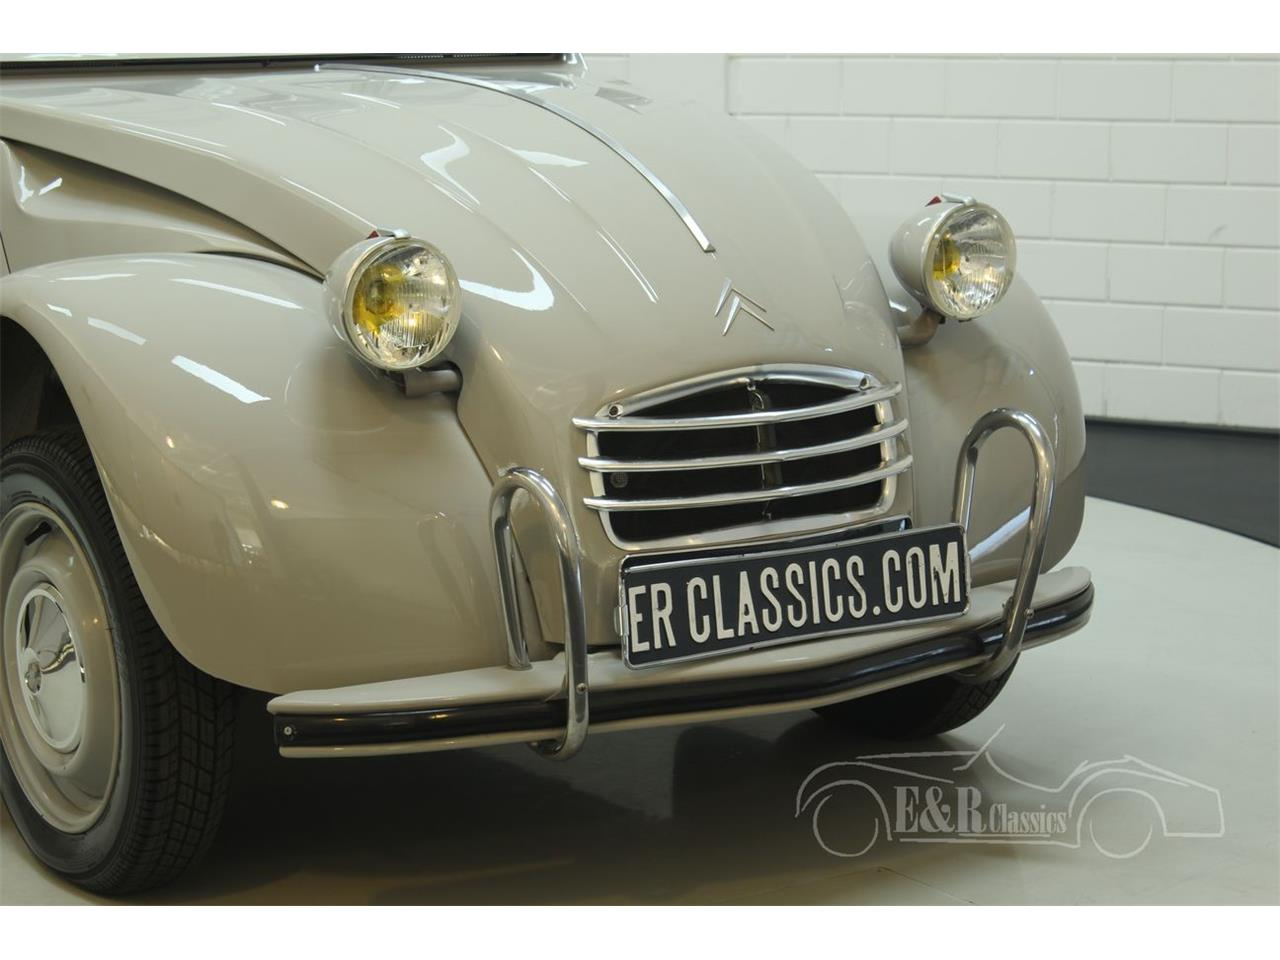 Large Picture of '66 2CV located in Waalwijk - Keine Angabe - - $22,550.00 - PGSV